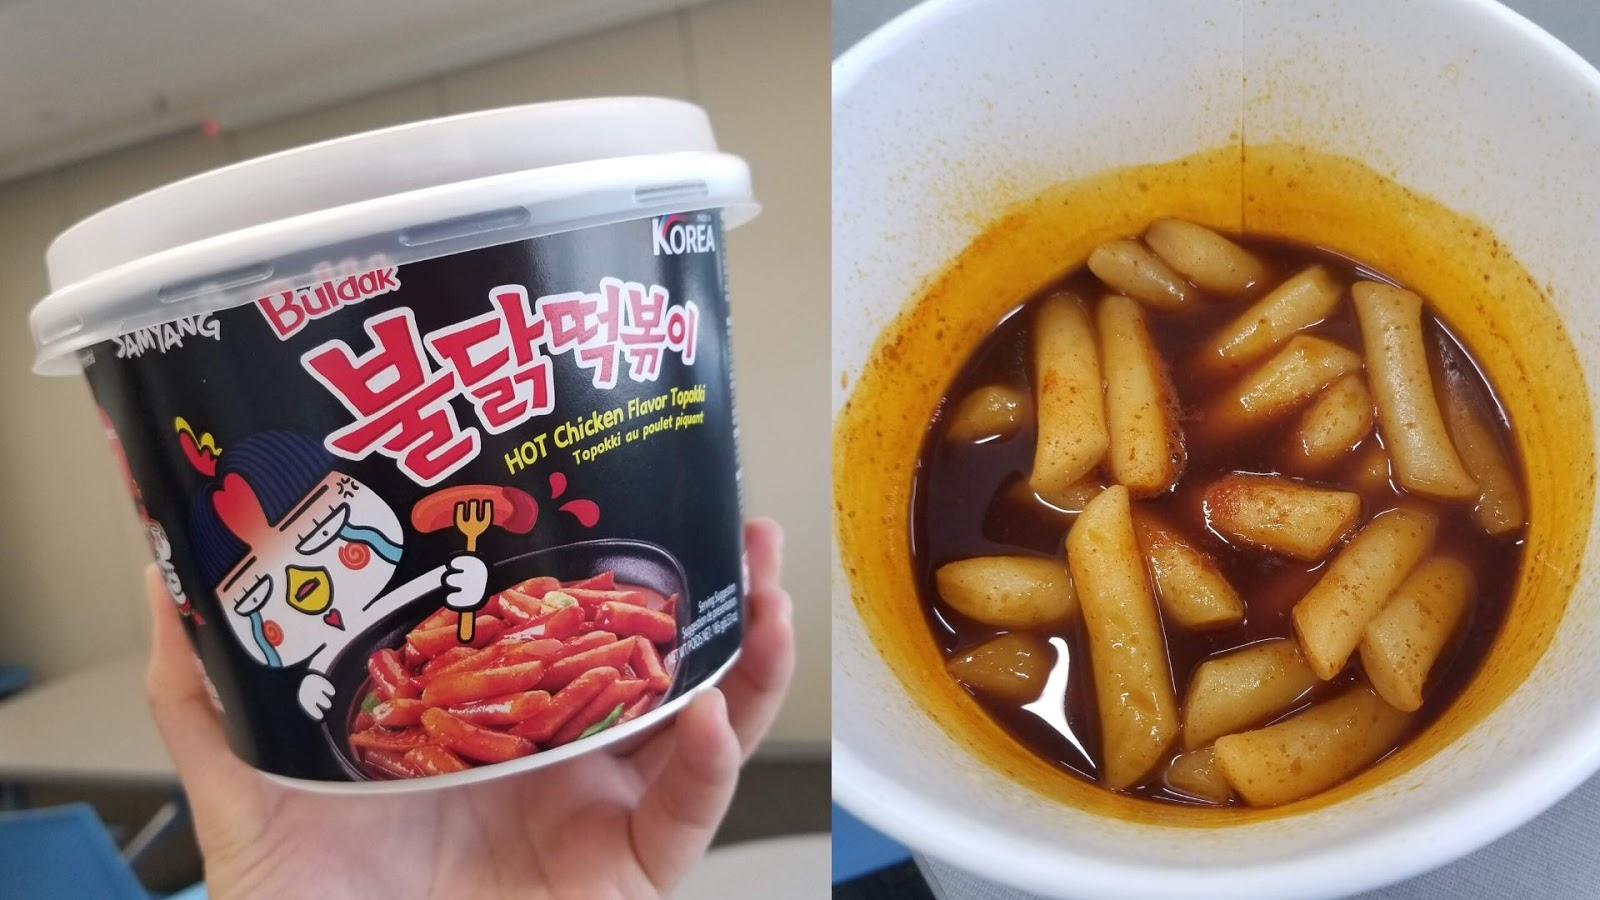 Can You Handle These Instant Fire Korean Rice Cakes?